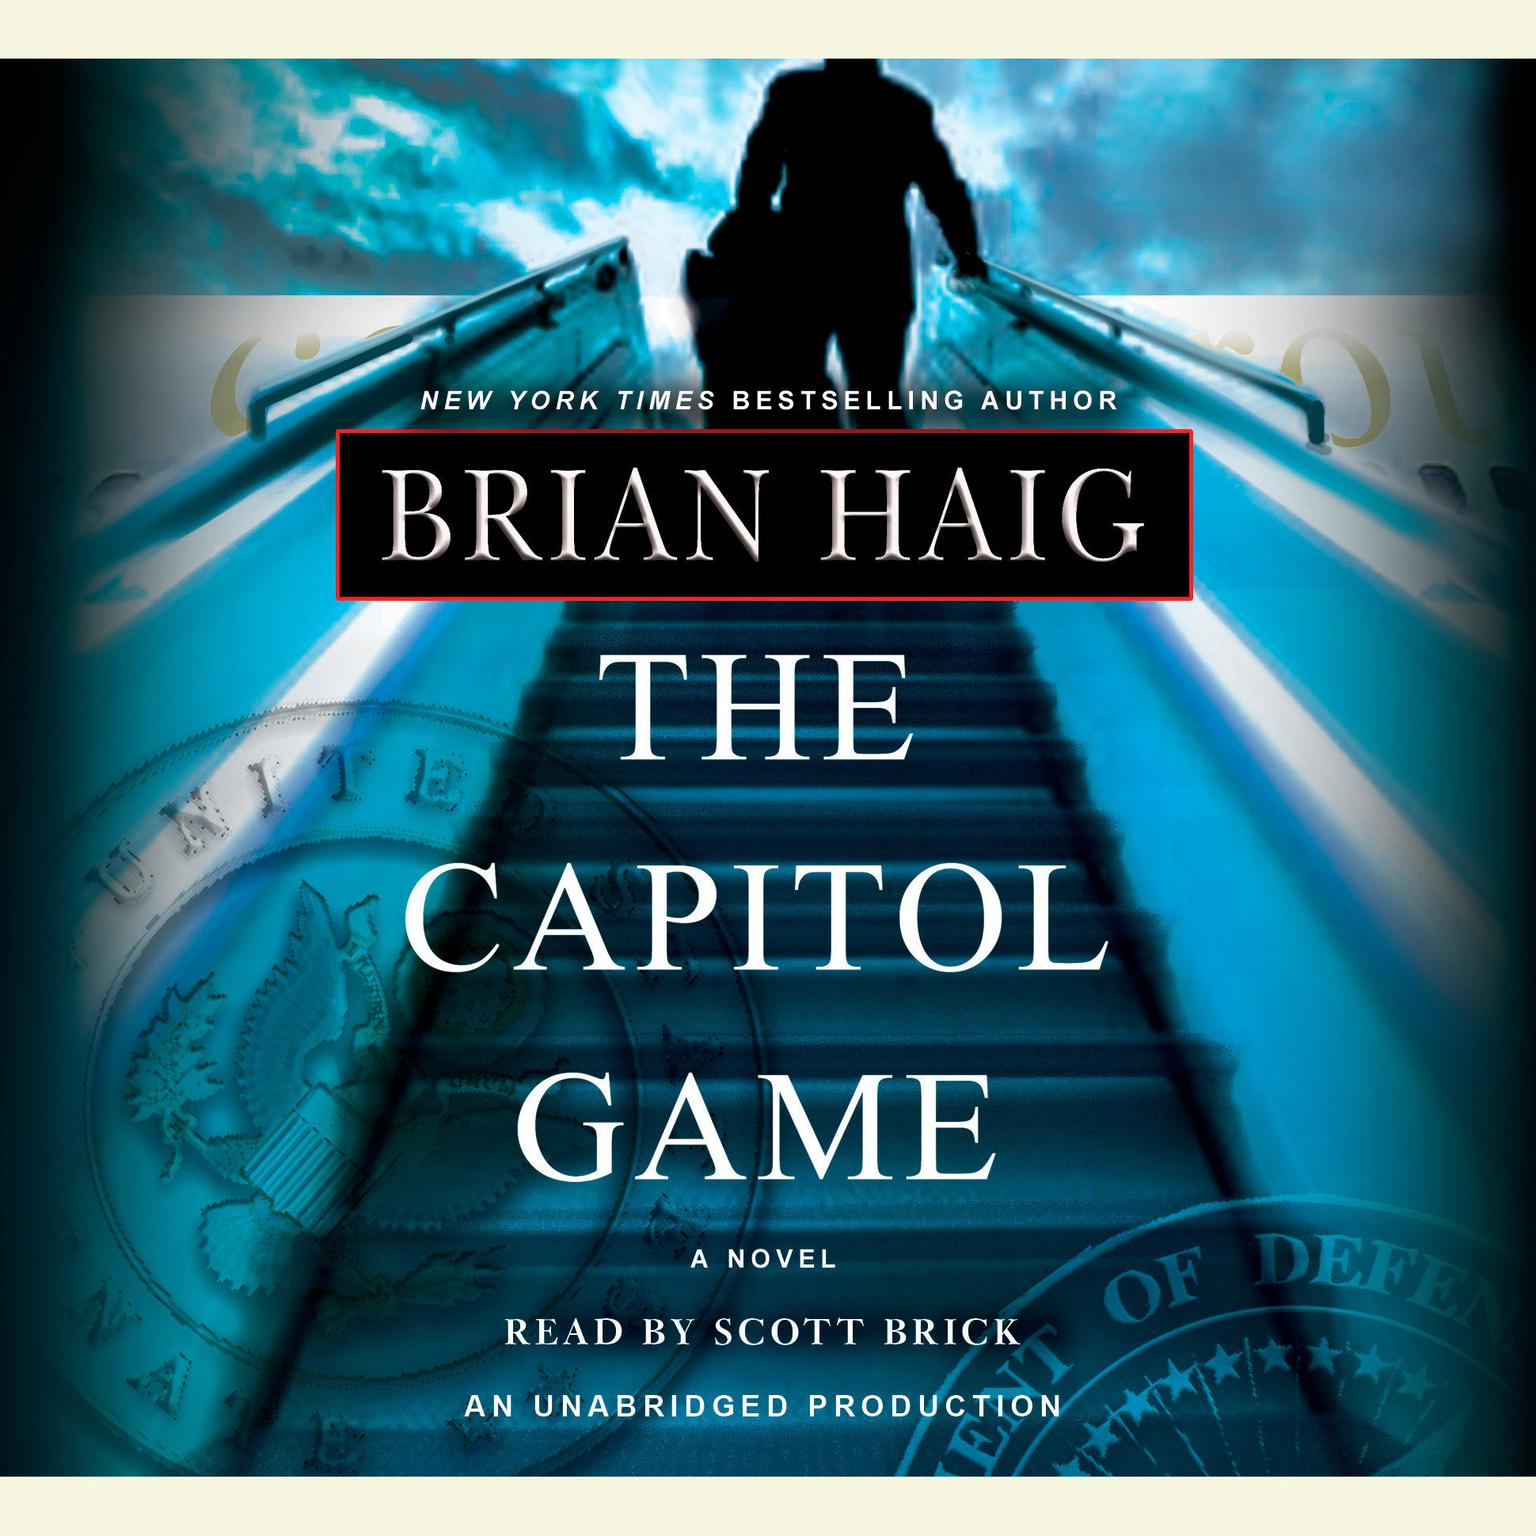 Image result for The Capitla Game by brian haig book covers